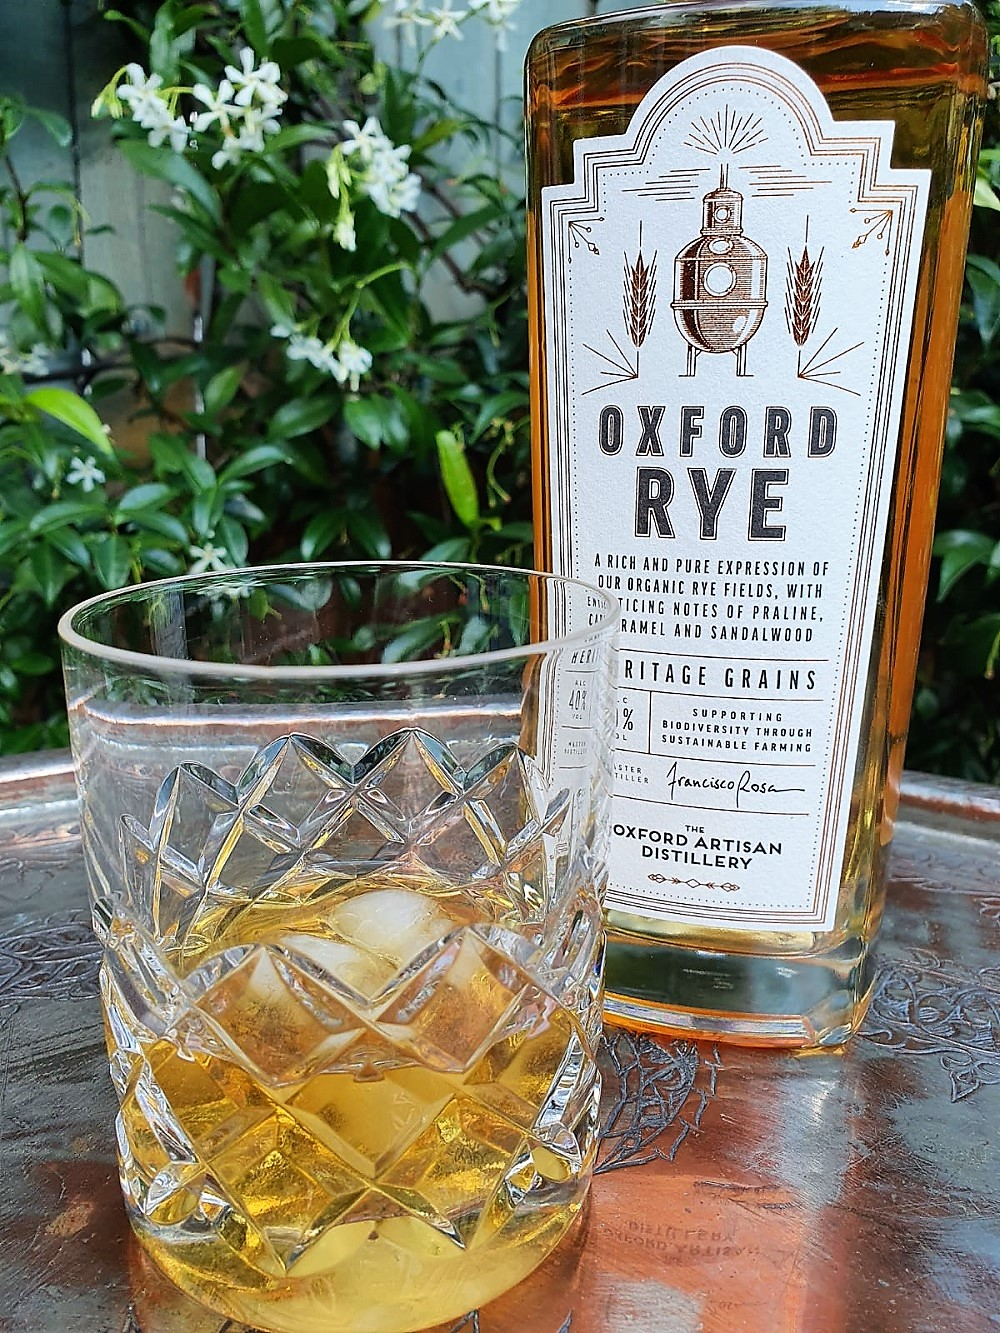 OAD-Oxford-Rye-with-whisky-glass.